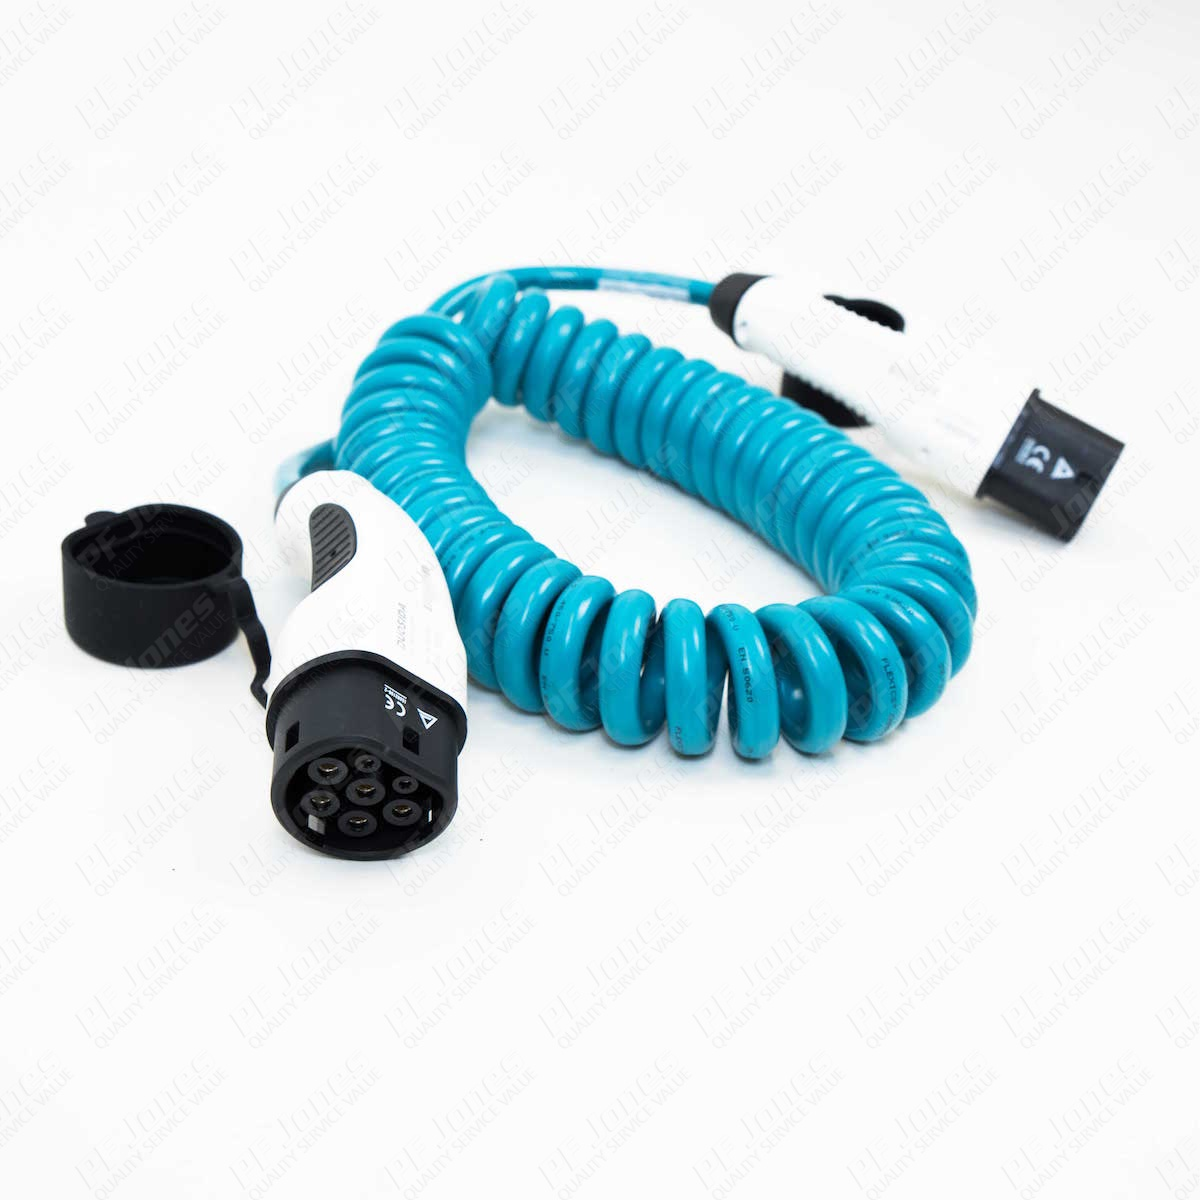 4.5m (Spiral) 20 Amp Type 2 to Type 2 EV Charging Cable